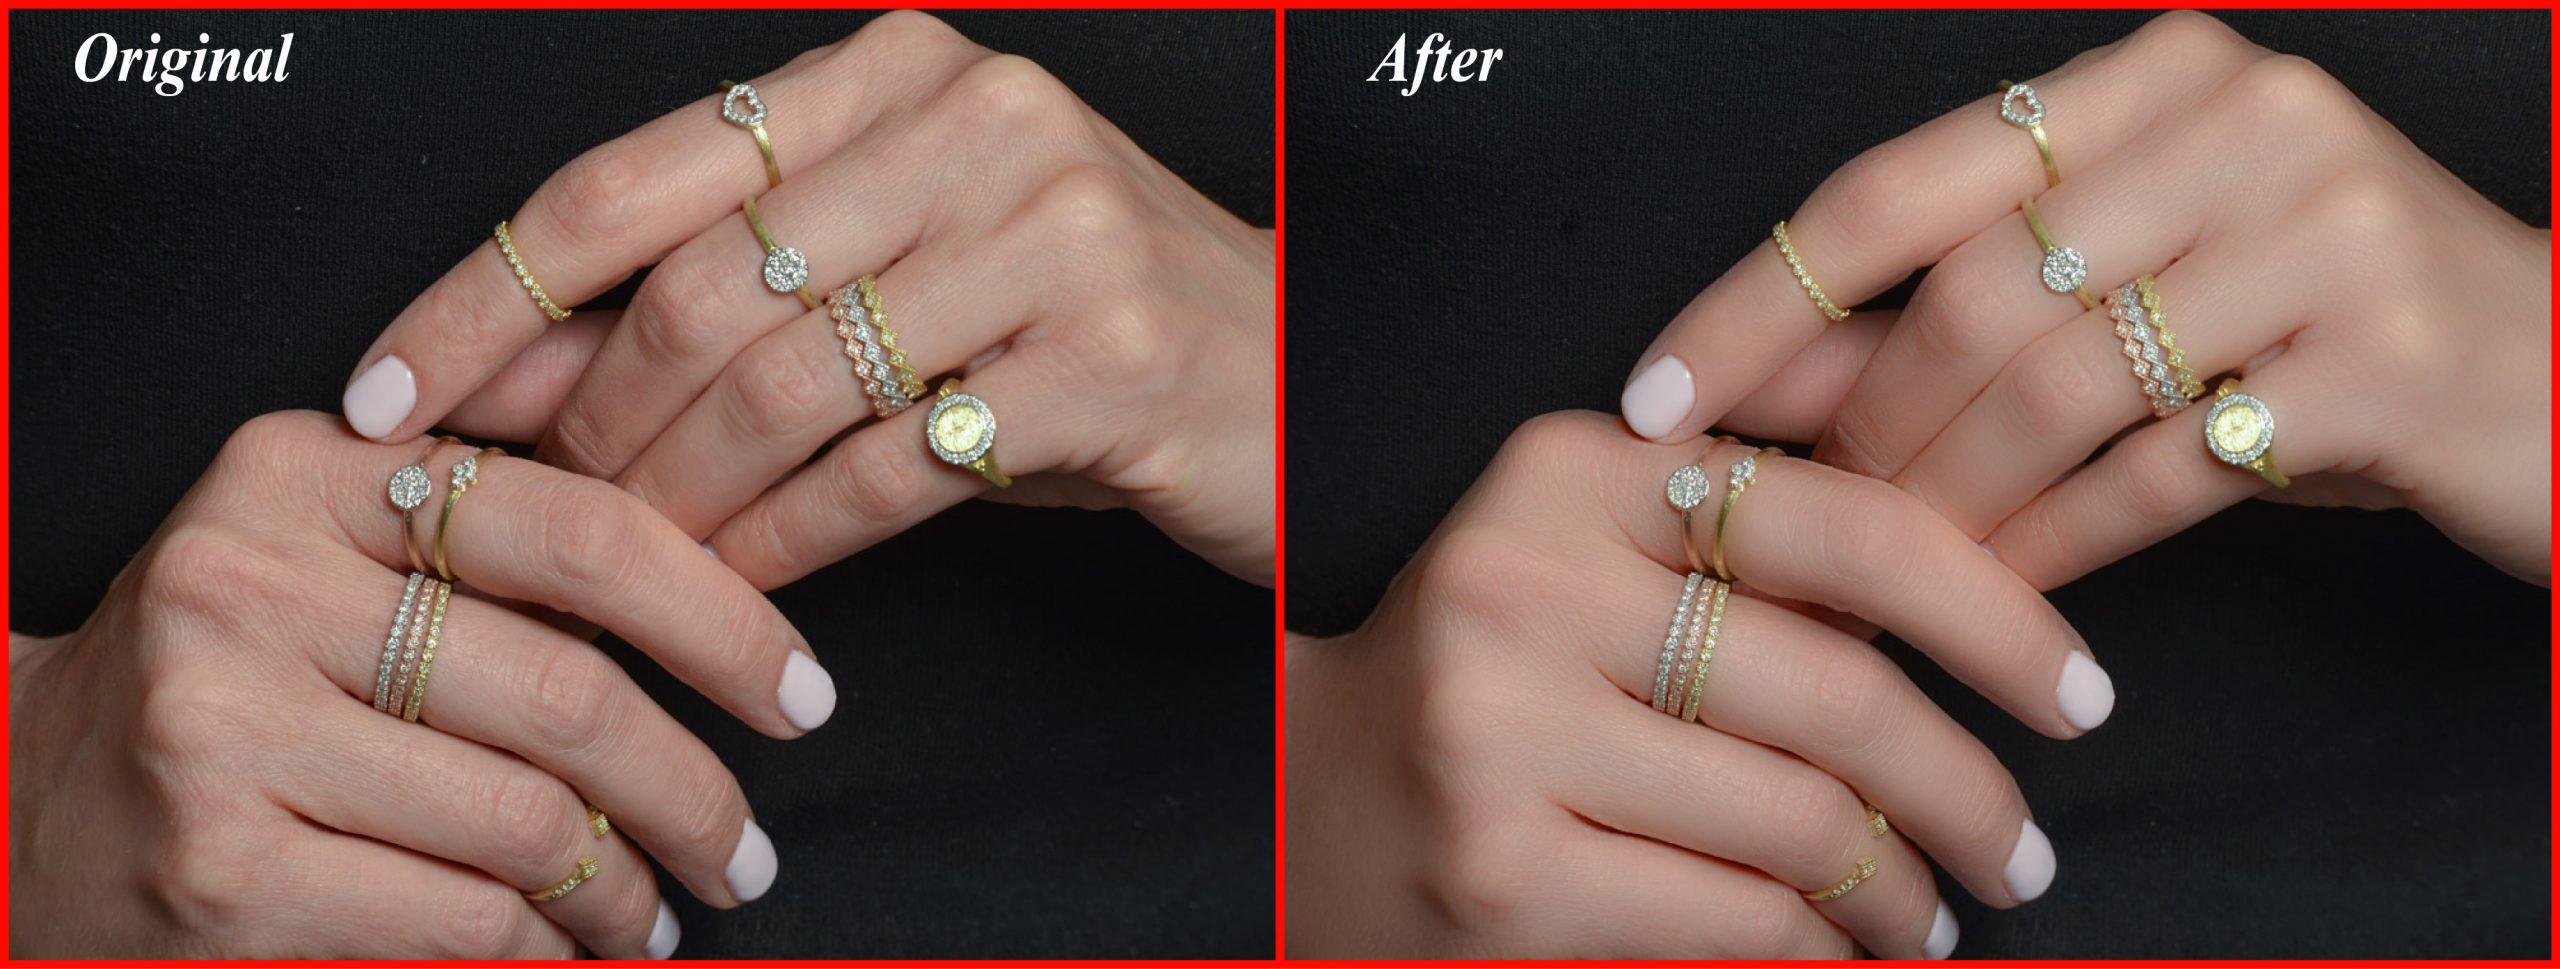 Photo-retouching-Wrinkles-clipping-path-photo-edit